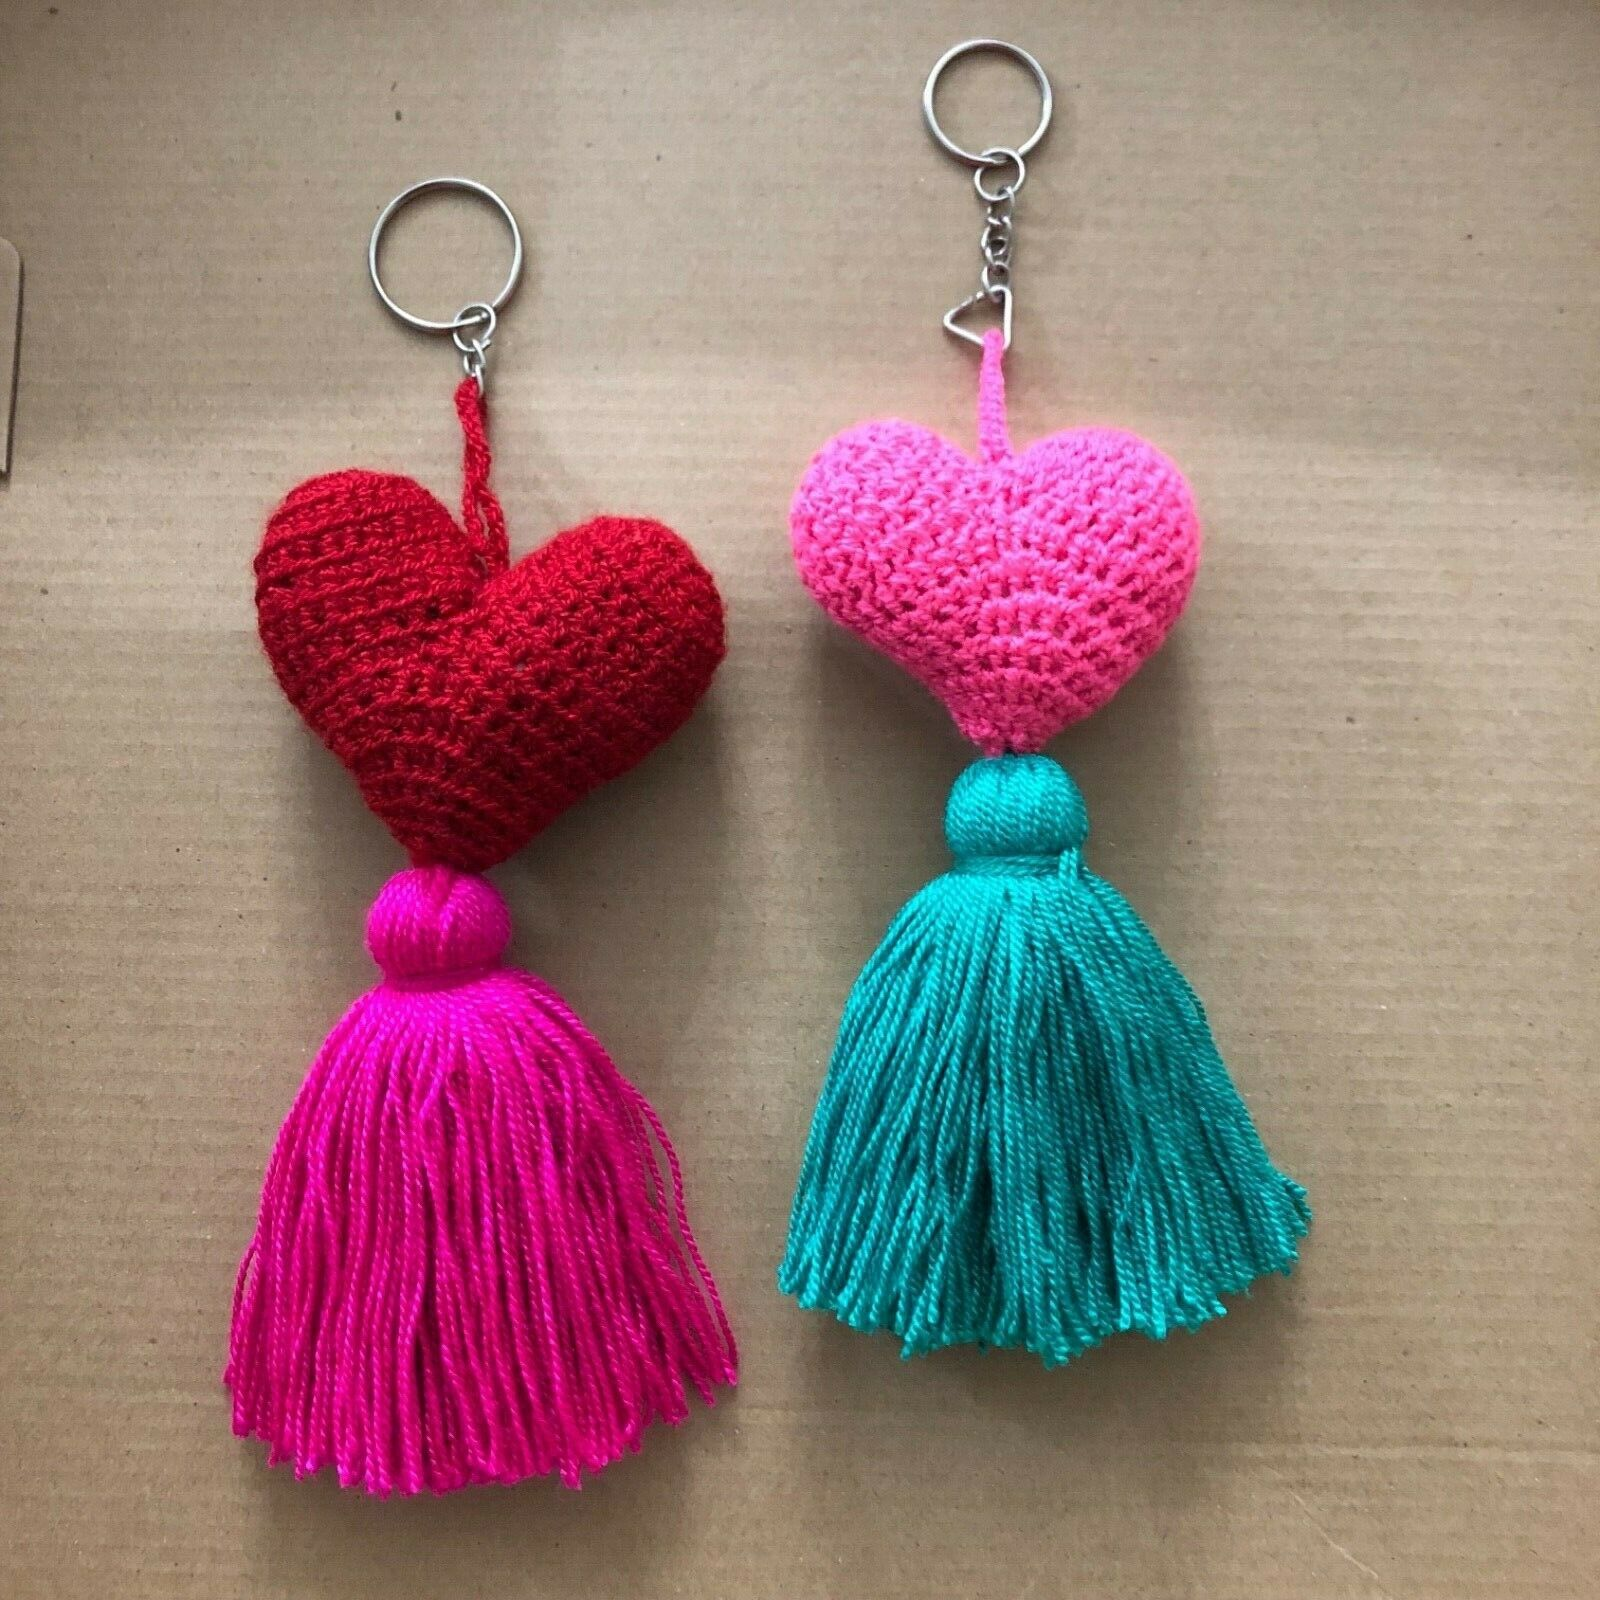 2 Pcs Wayuu Colorful Heart Tassel Keychain (set #3)